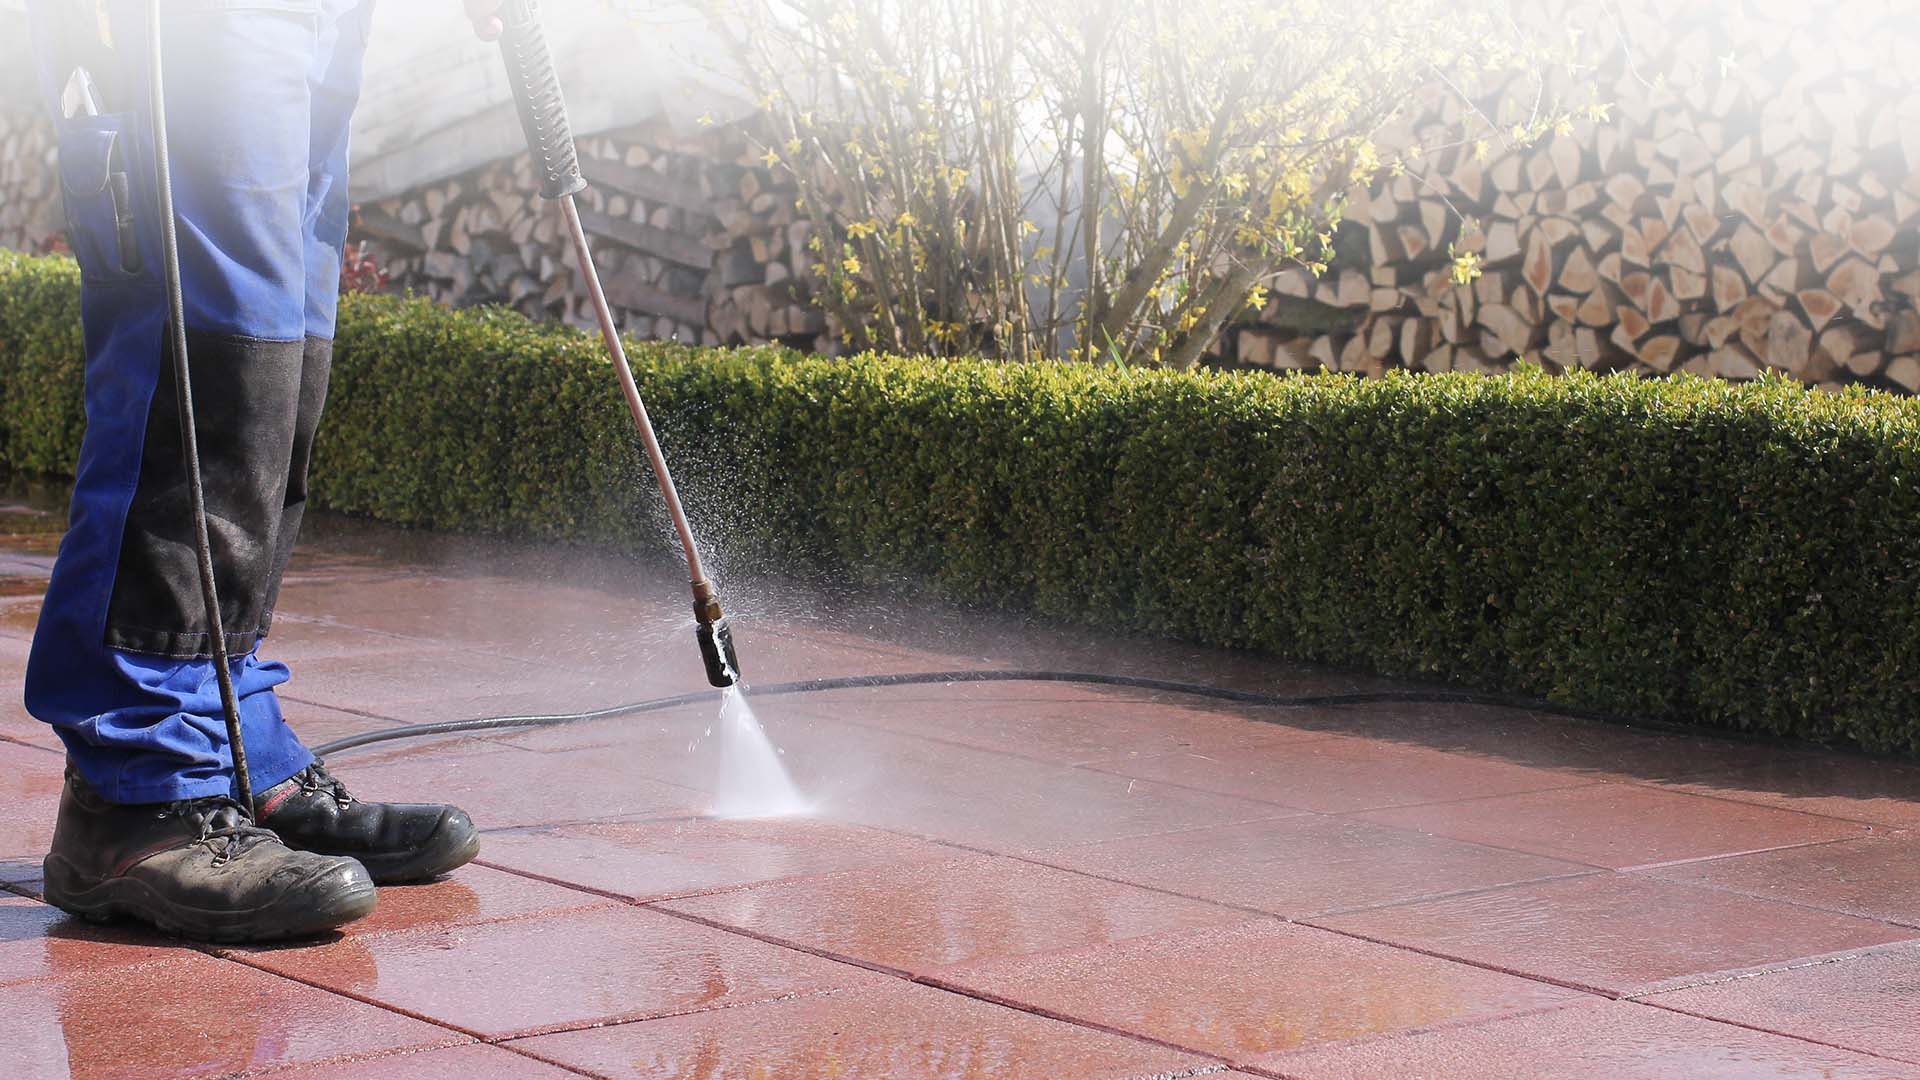 Jetcleaning for driveways, patios etc